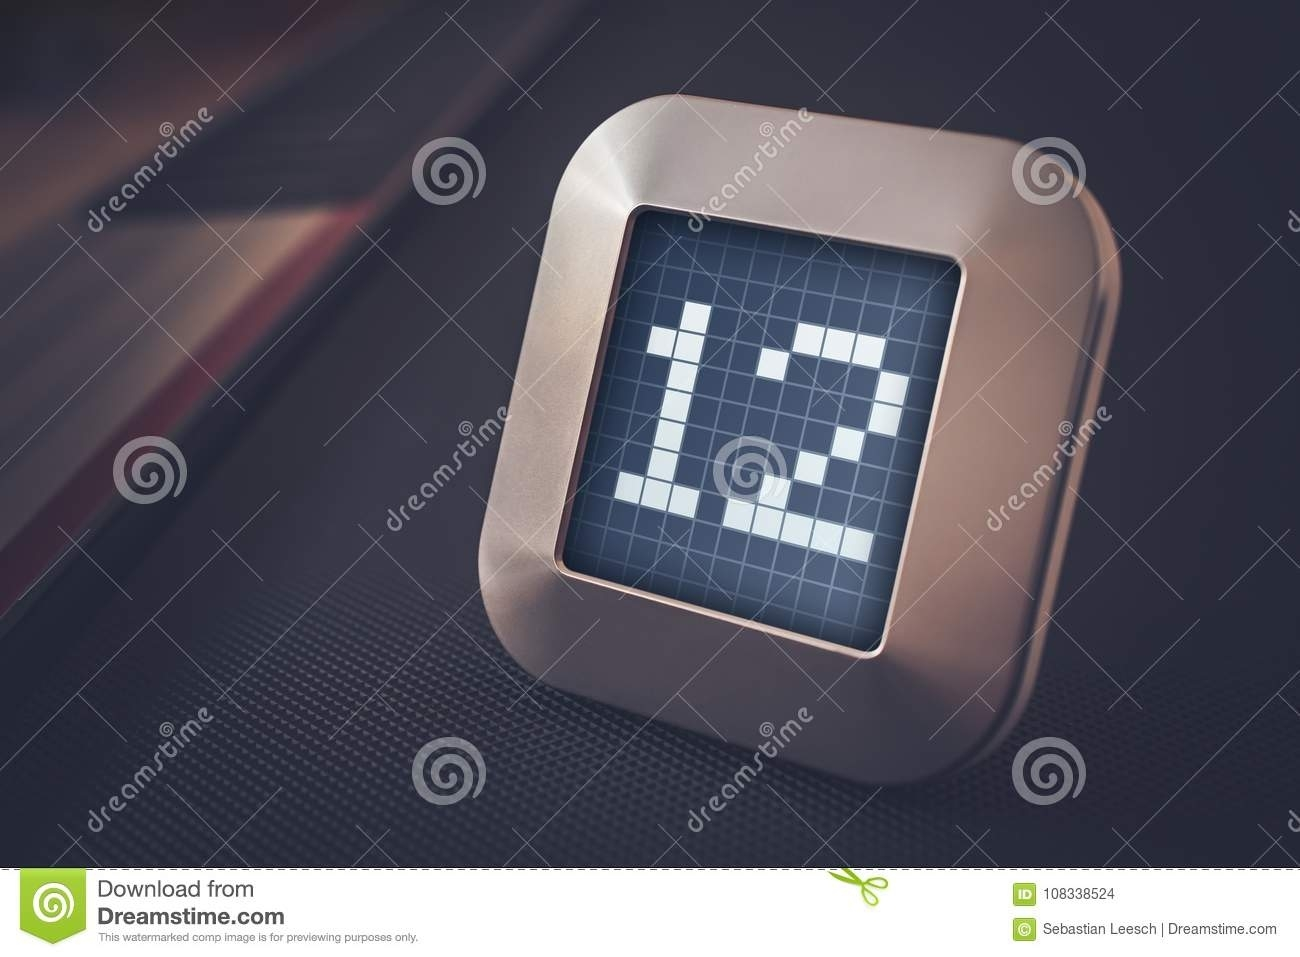 The Number 12 On A Digital Calendar, Thermostat Or Timer Stock Photo Calendar And Countdown Chrome